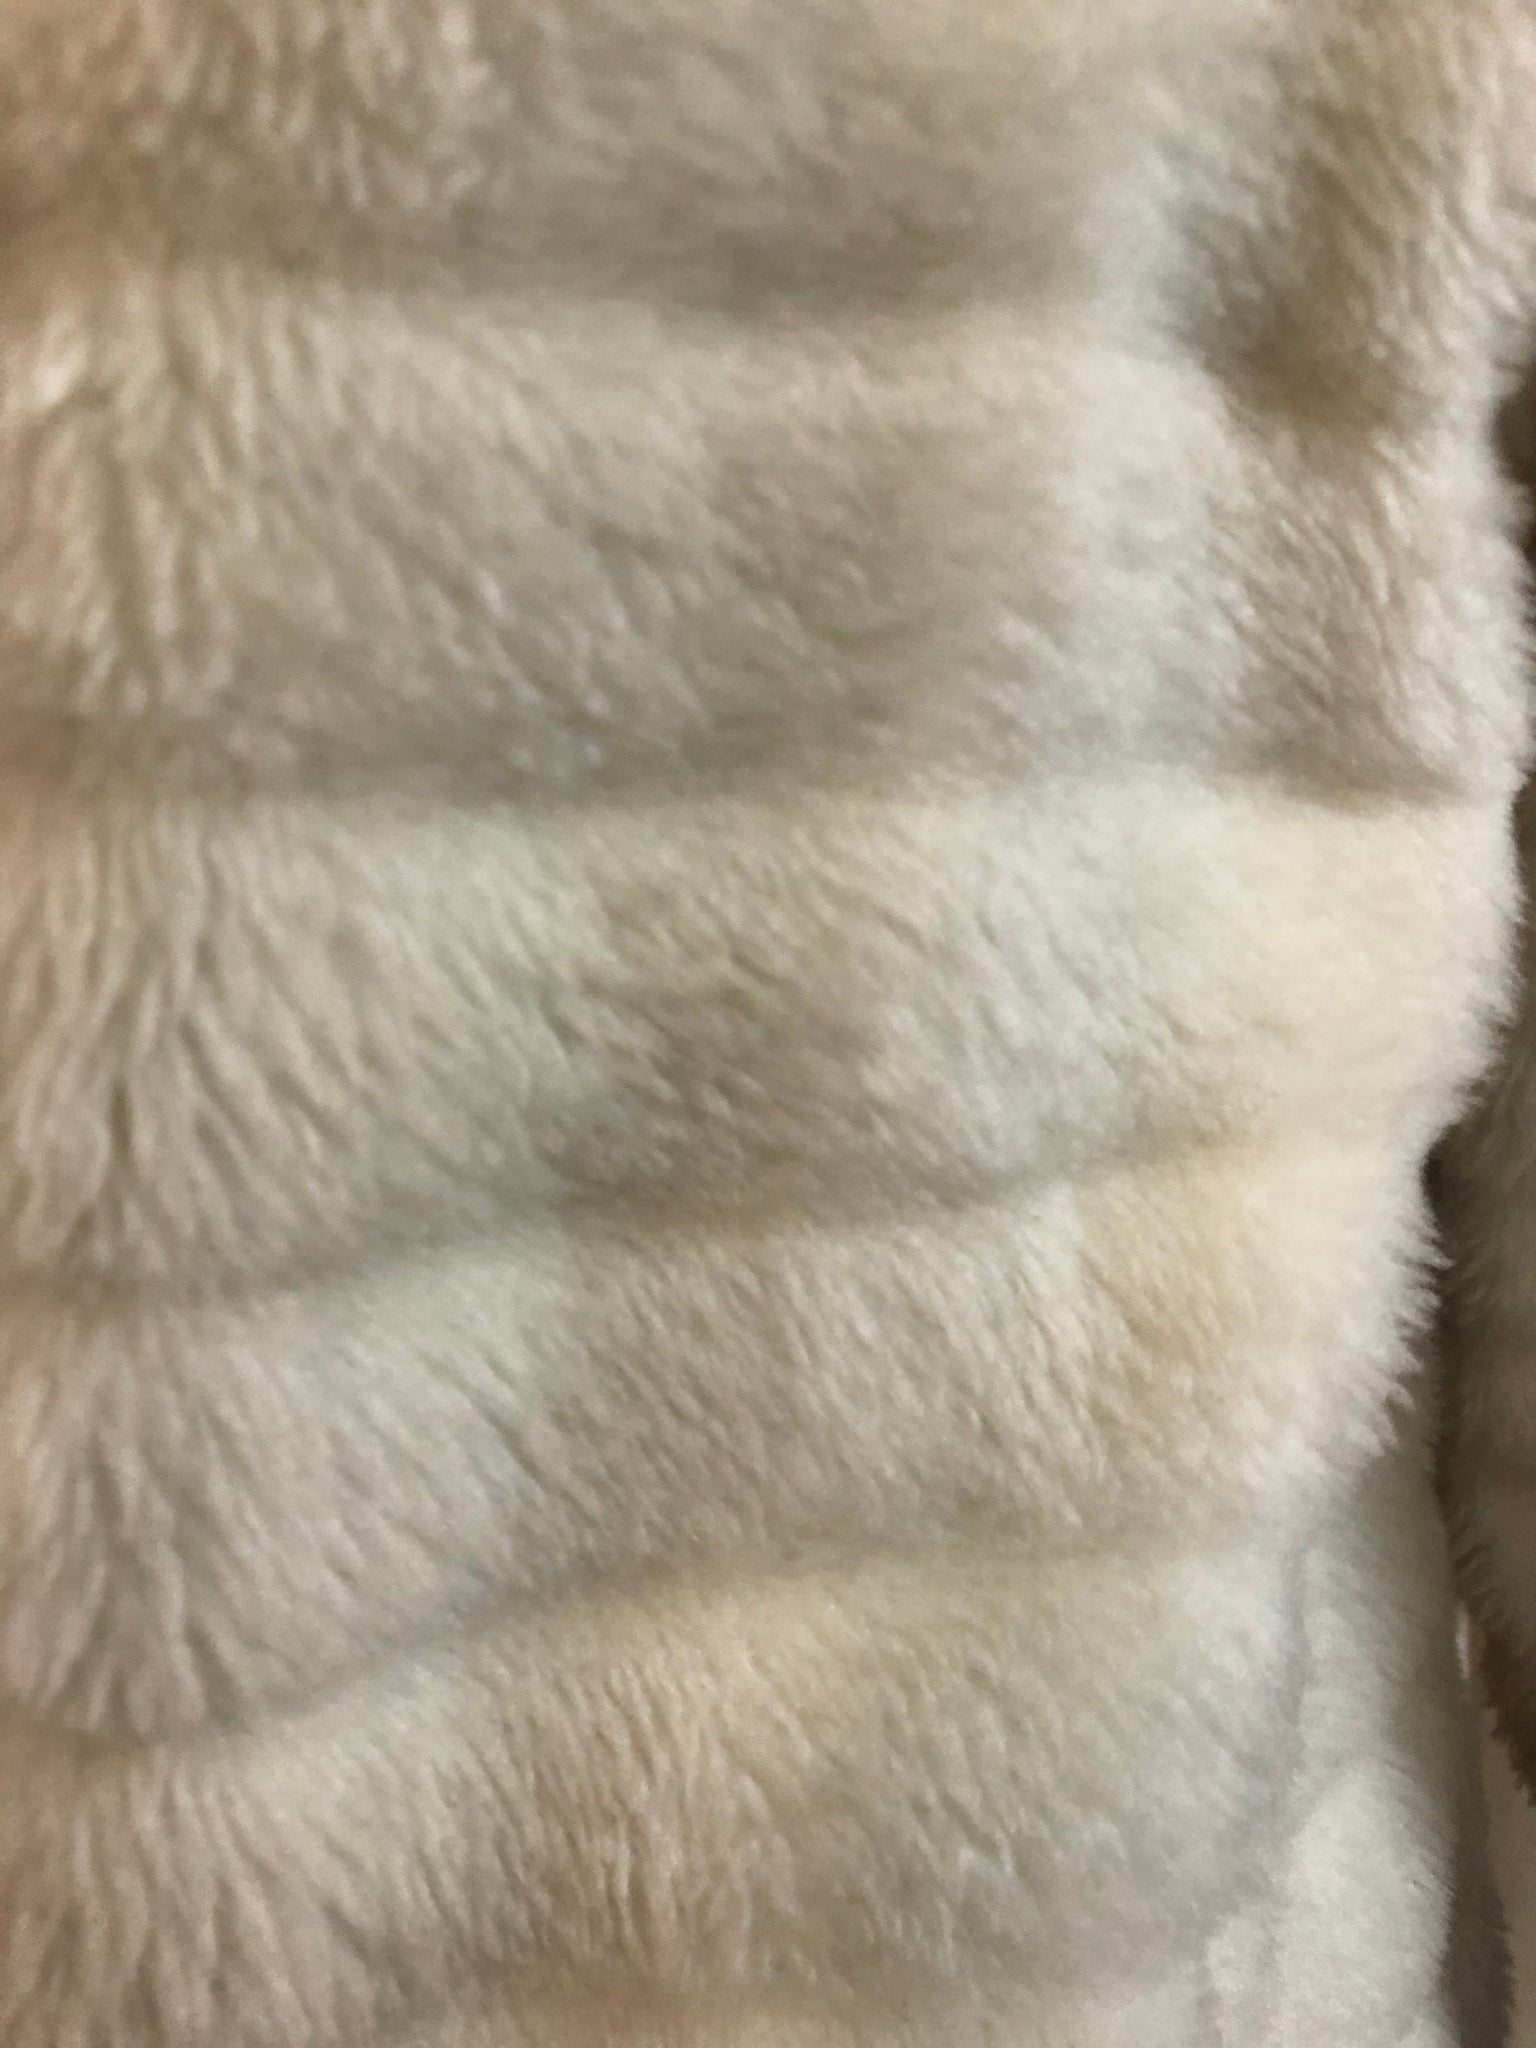 Gino Charles  60s White Faux Fur Coat with Fur Trim CLOSE UP 4 of 6Gino Charles  60s White Faux Fur Coat with Contrasting Trim CLOSE UP 4 of 6